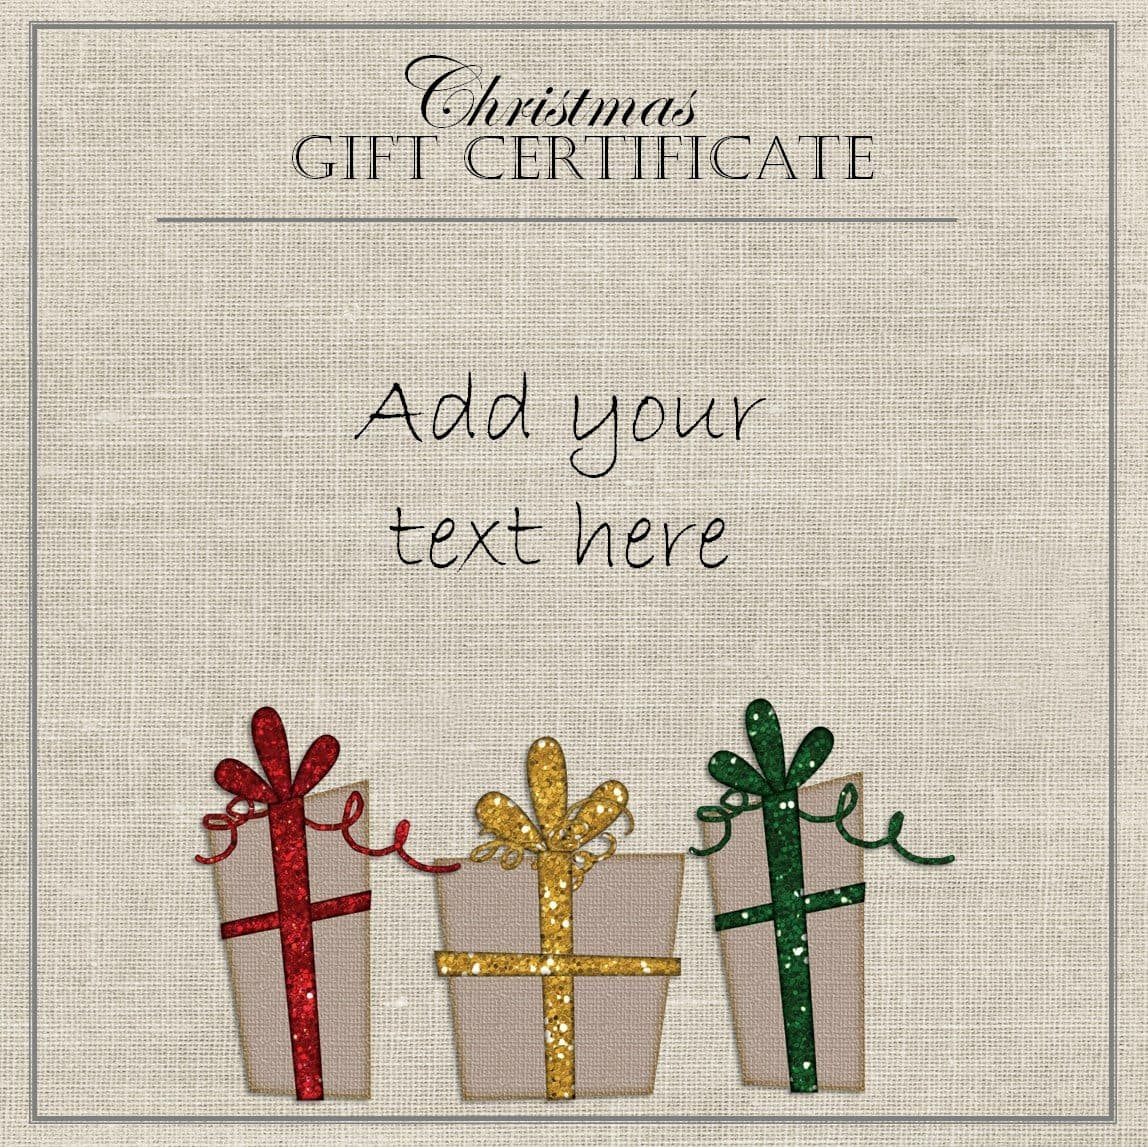 Elegant Gift Certificate Template With Three Gifts With Red, Yellow And  Green Ribbons  Free Holiday Gift Certificate Templates